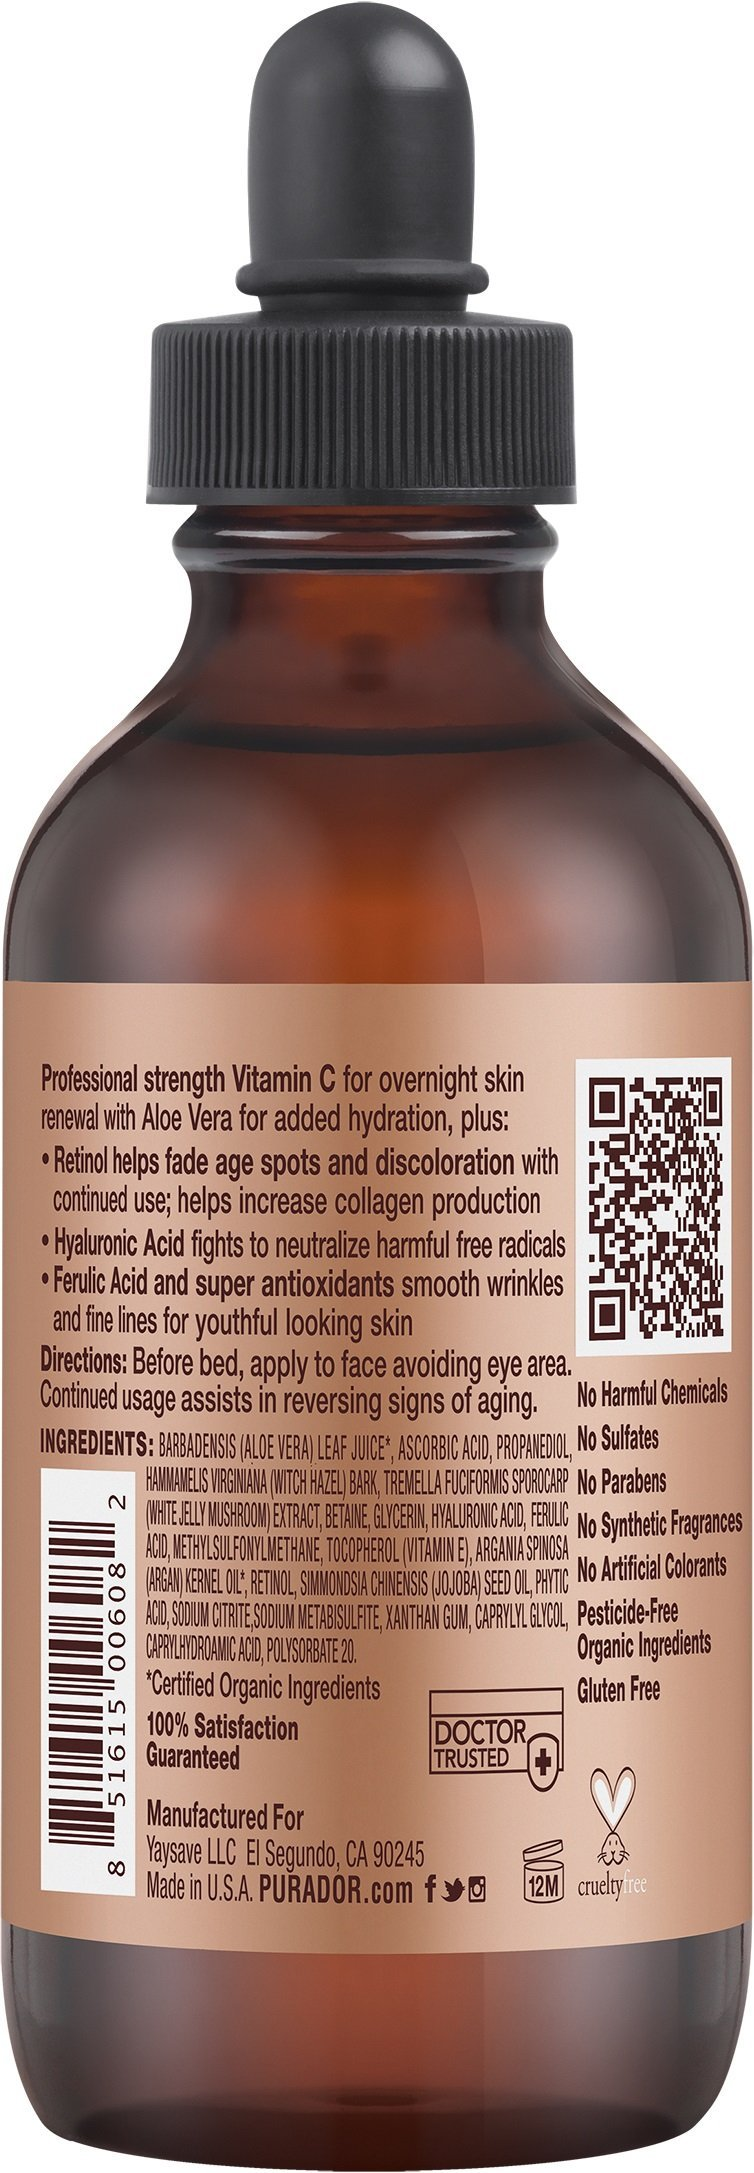 PURA D'OR 20% Vitamin C Serum Professional Strength Anti-Aging Skin Therapy Organic Argan Oil, Hyaluronic Acid & Vitamin E, 4 Fluid Ounce by PURA D'OR (Image #2)